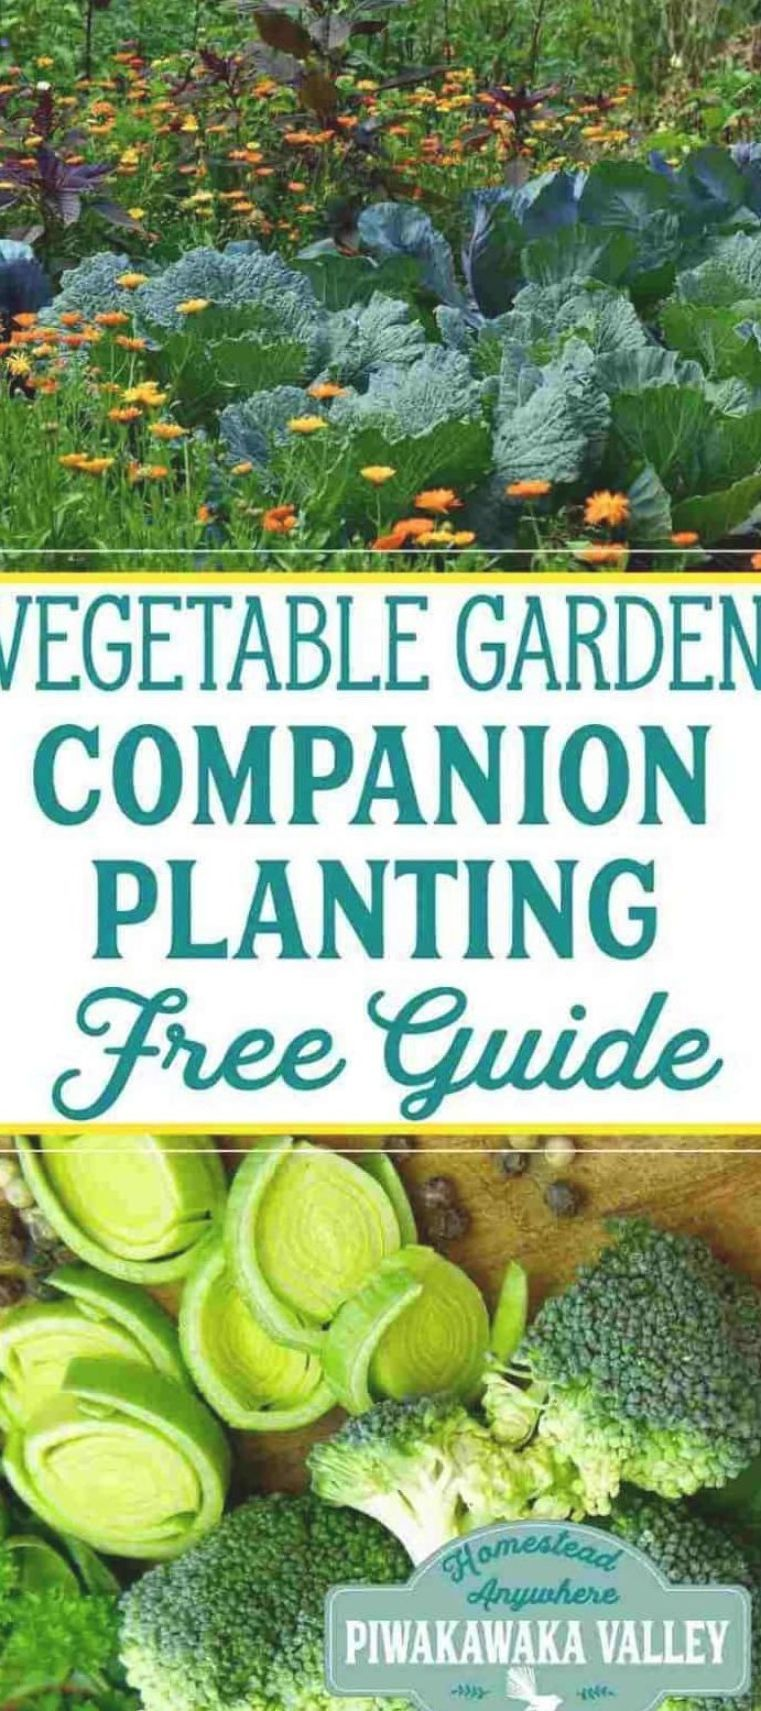 c130a3939d141884588f88b49e14961d - The Vegetable Gardener's Container Bible Pdf